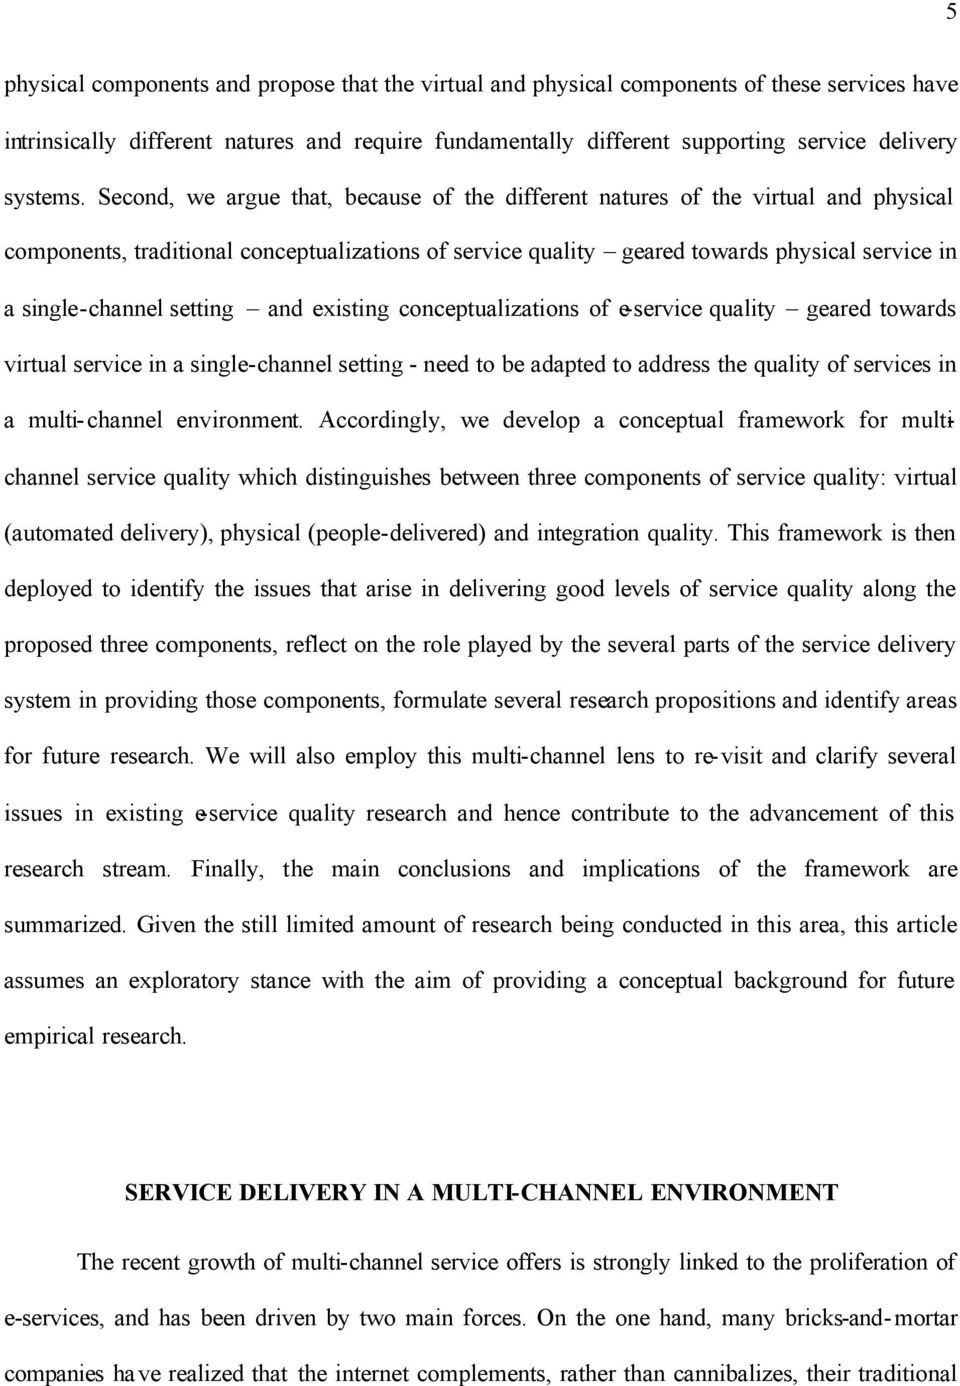 Second, we argue that, because of the different natures of the virtual and physical components, traditional conceptualizations of service quality geared towards physical service in a single-channel